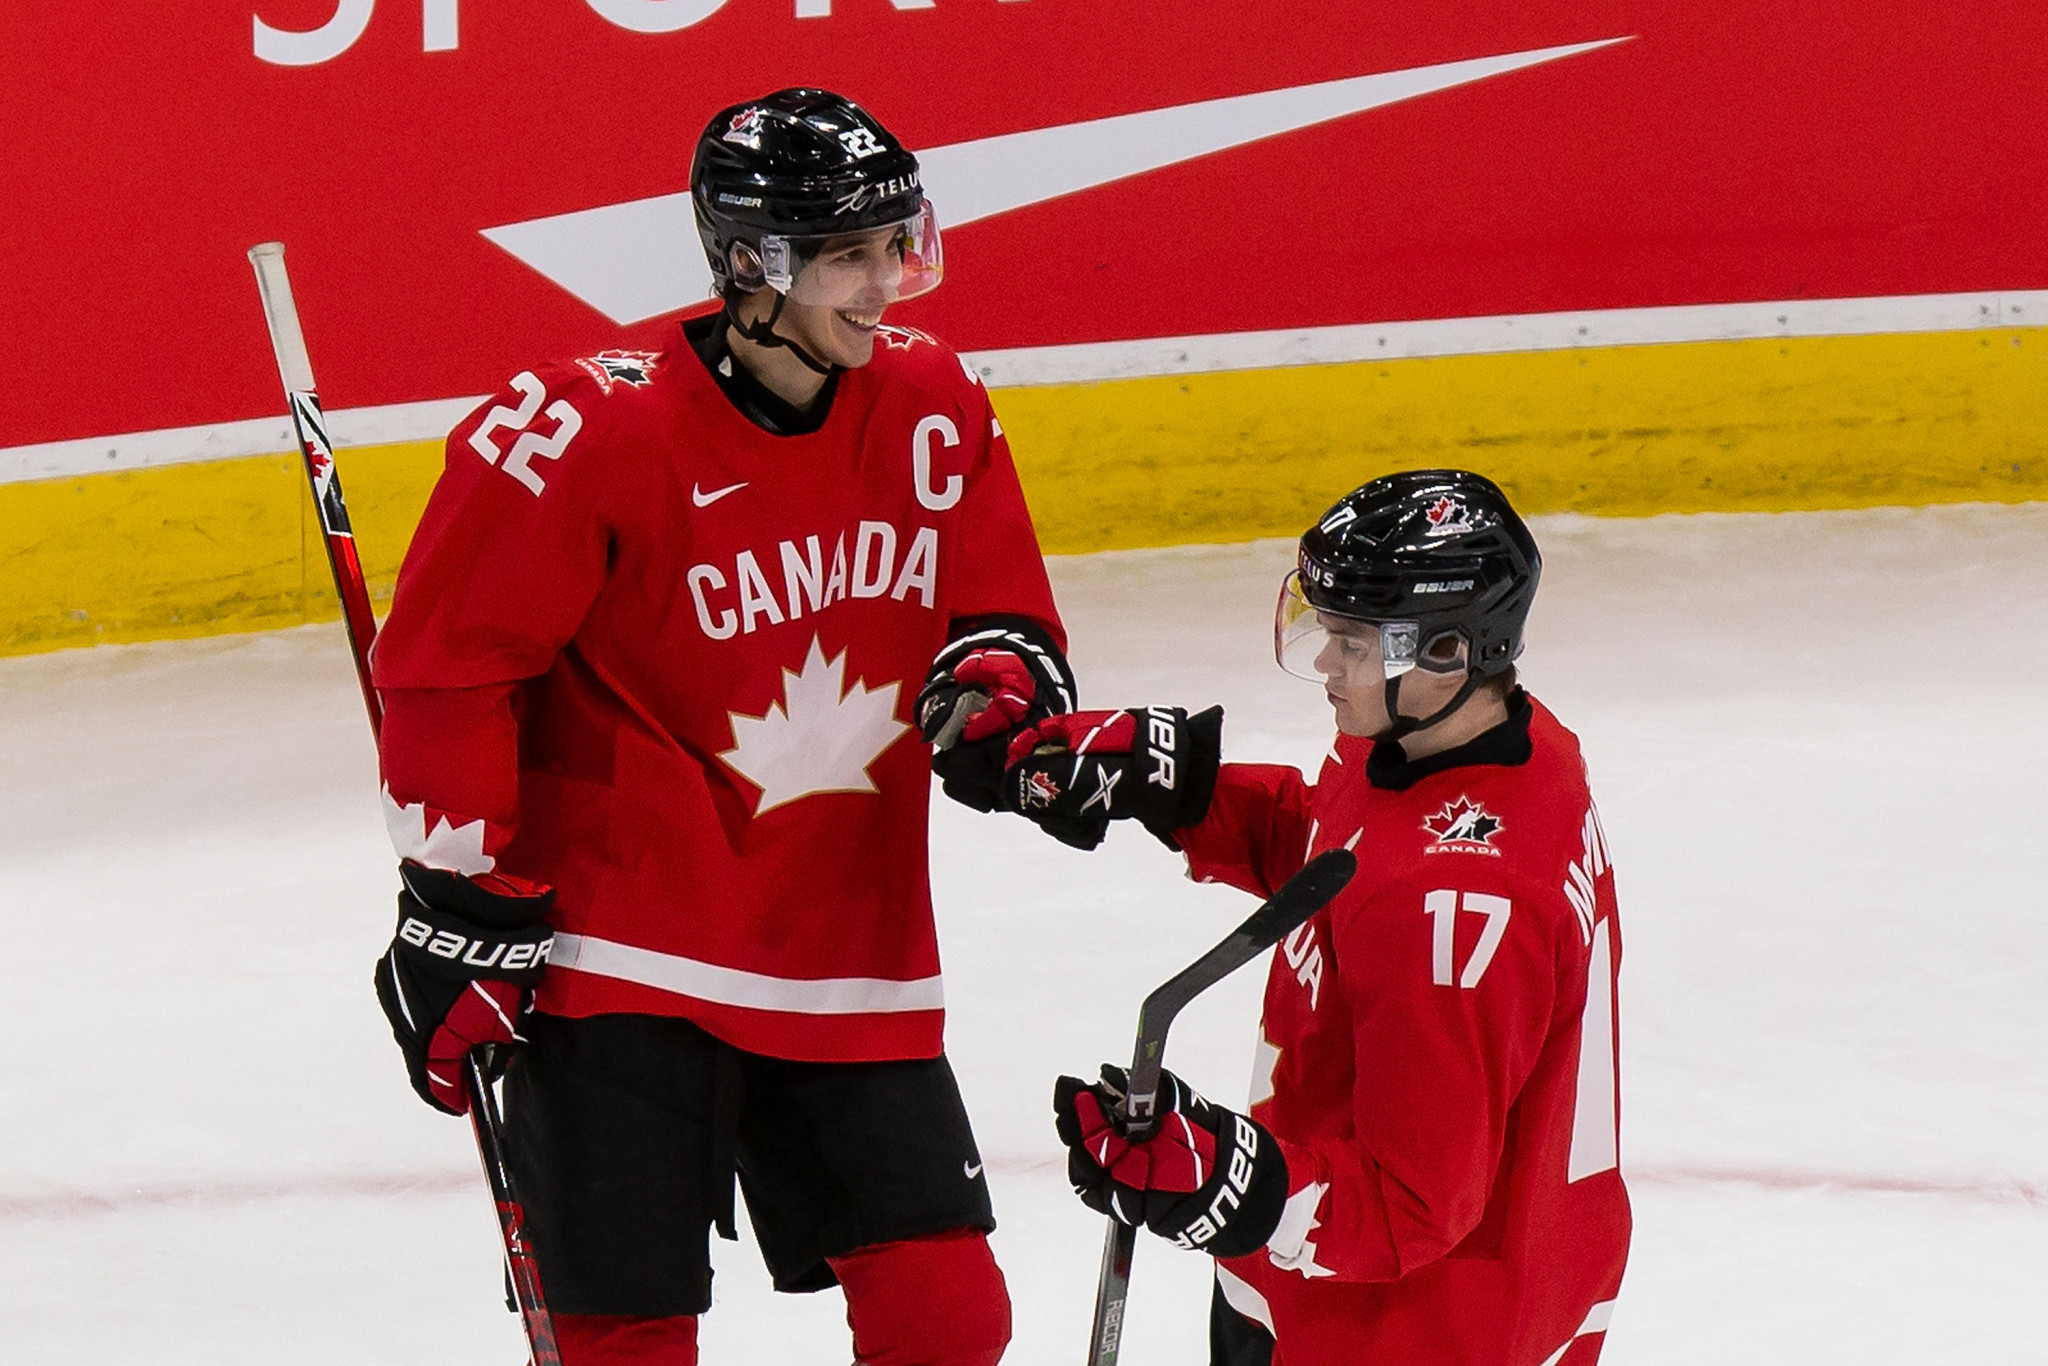 Hosts Canada to face US in final of IIHF World Junior Championship